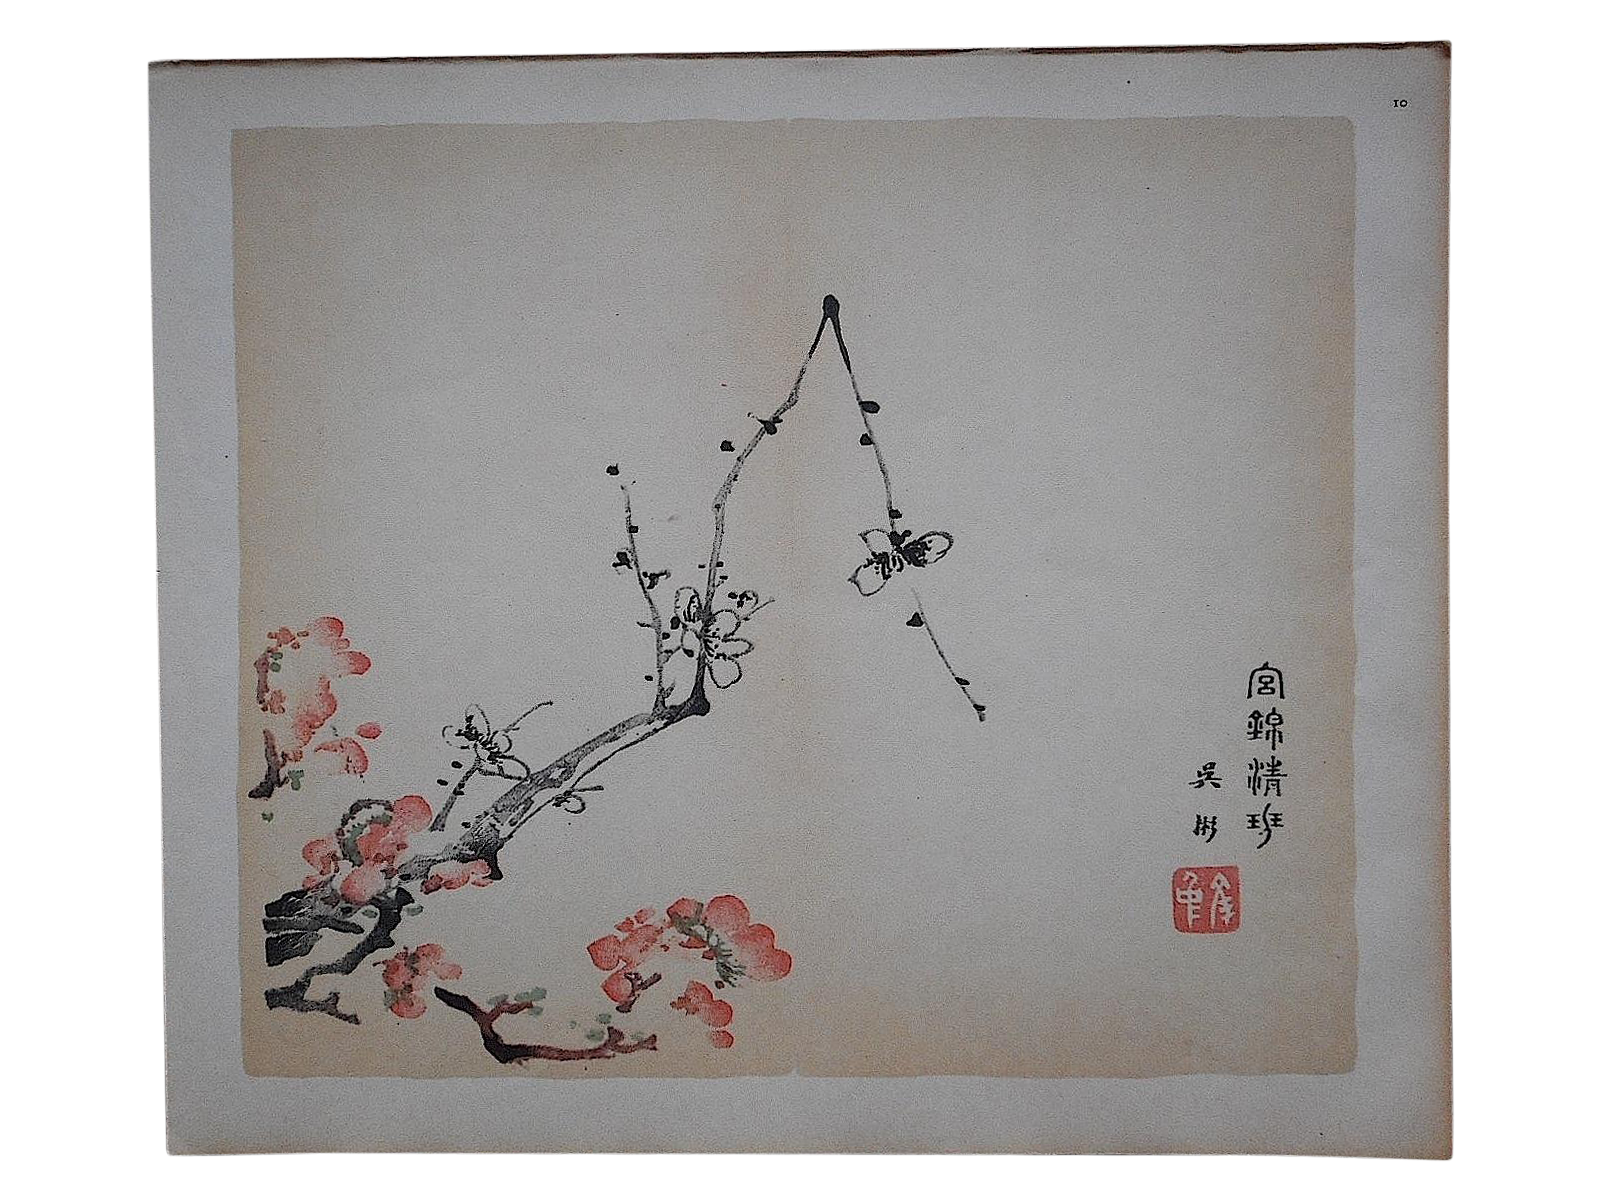 Vintage Chinese Lithograph Chairish